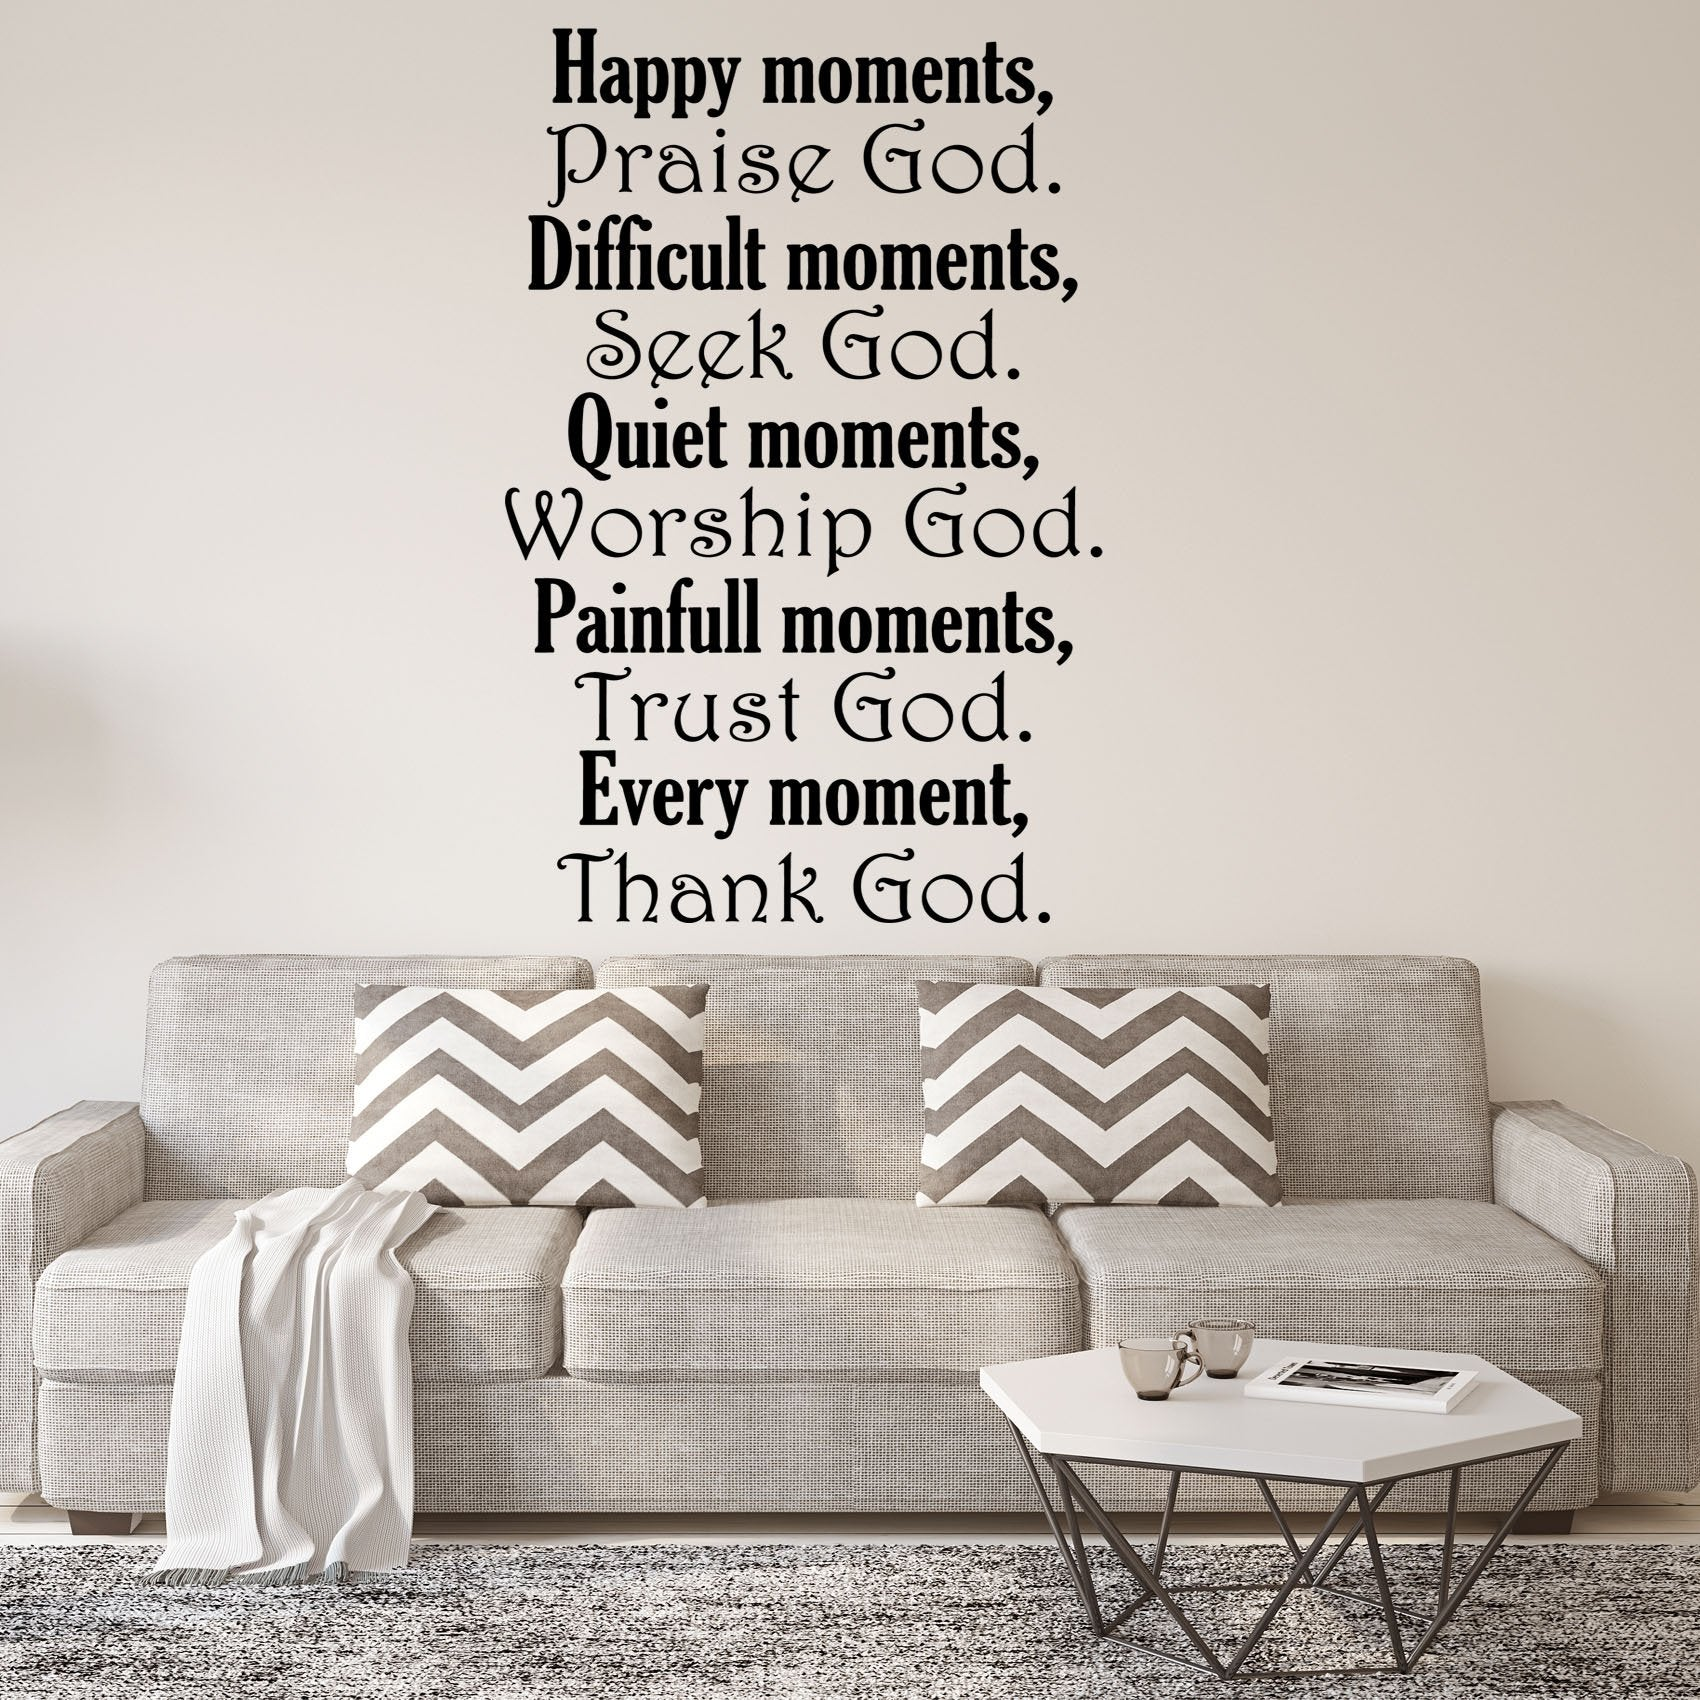 happy moments praise god christian quotes wall decal